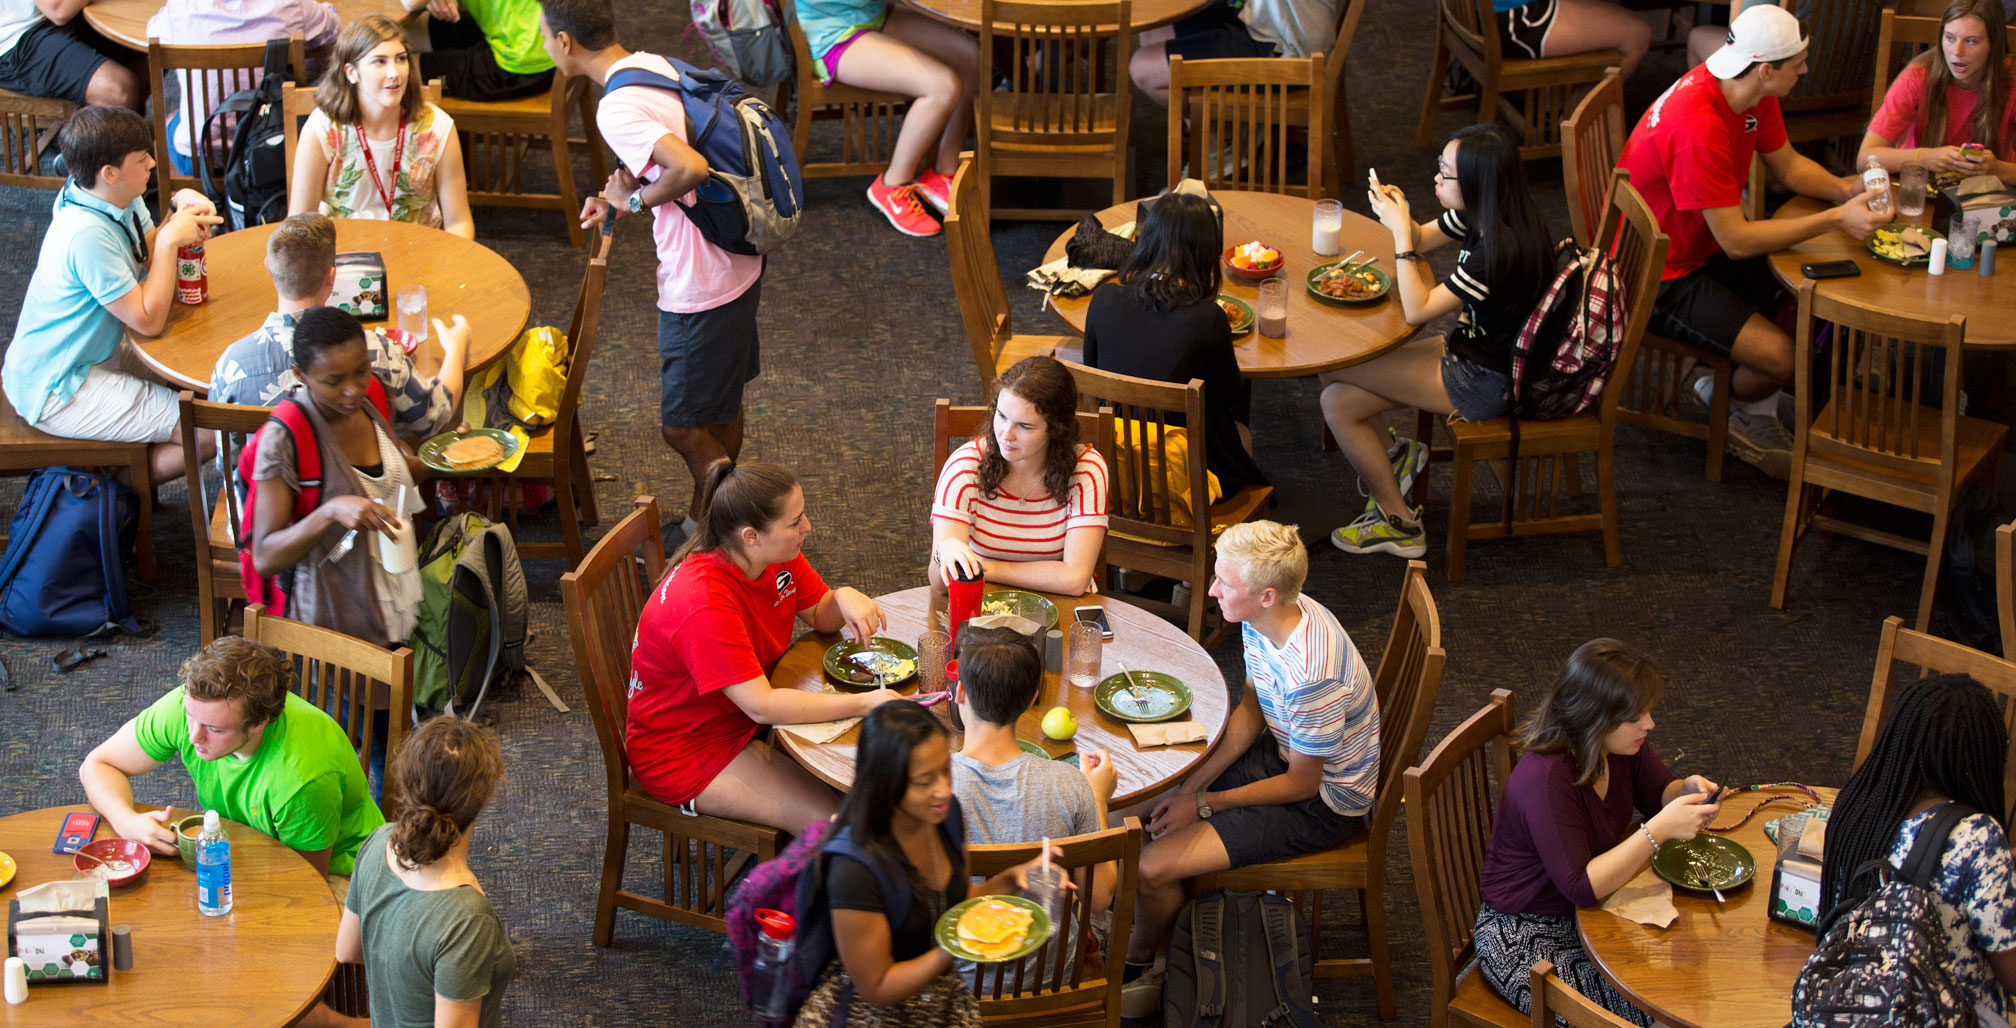 Dining commons<br> &nbsp;&nbsp;&nbsp;&nbsp;go trayless